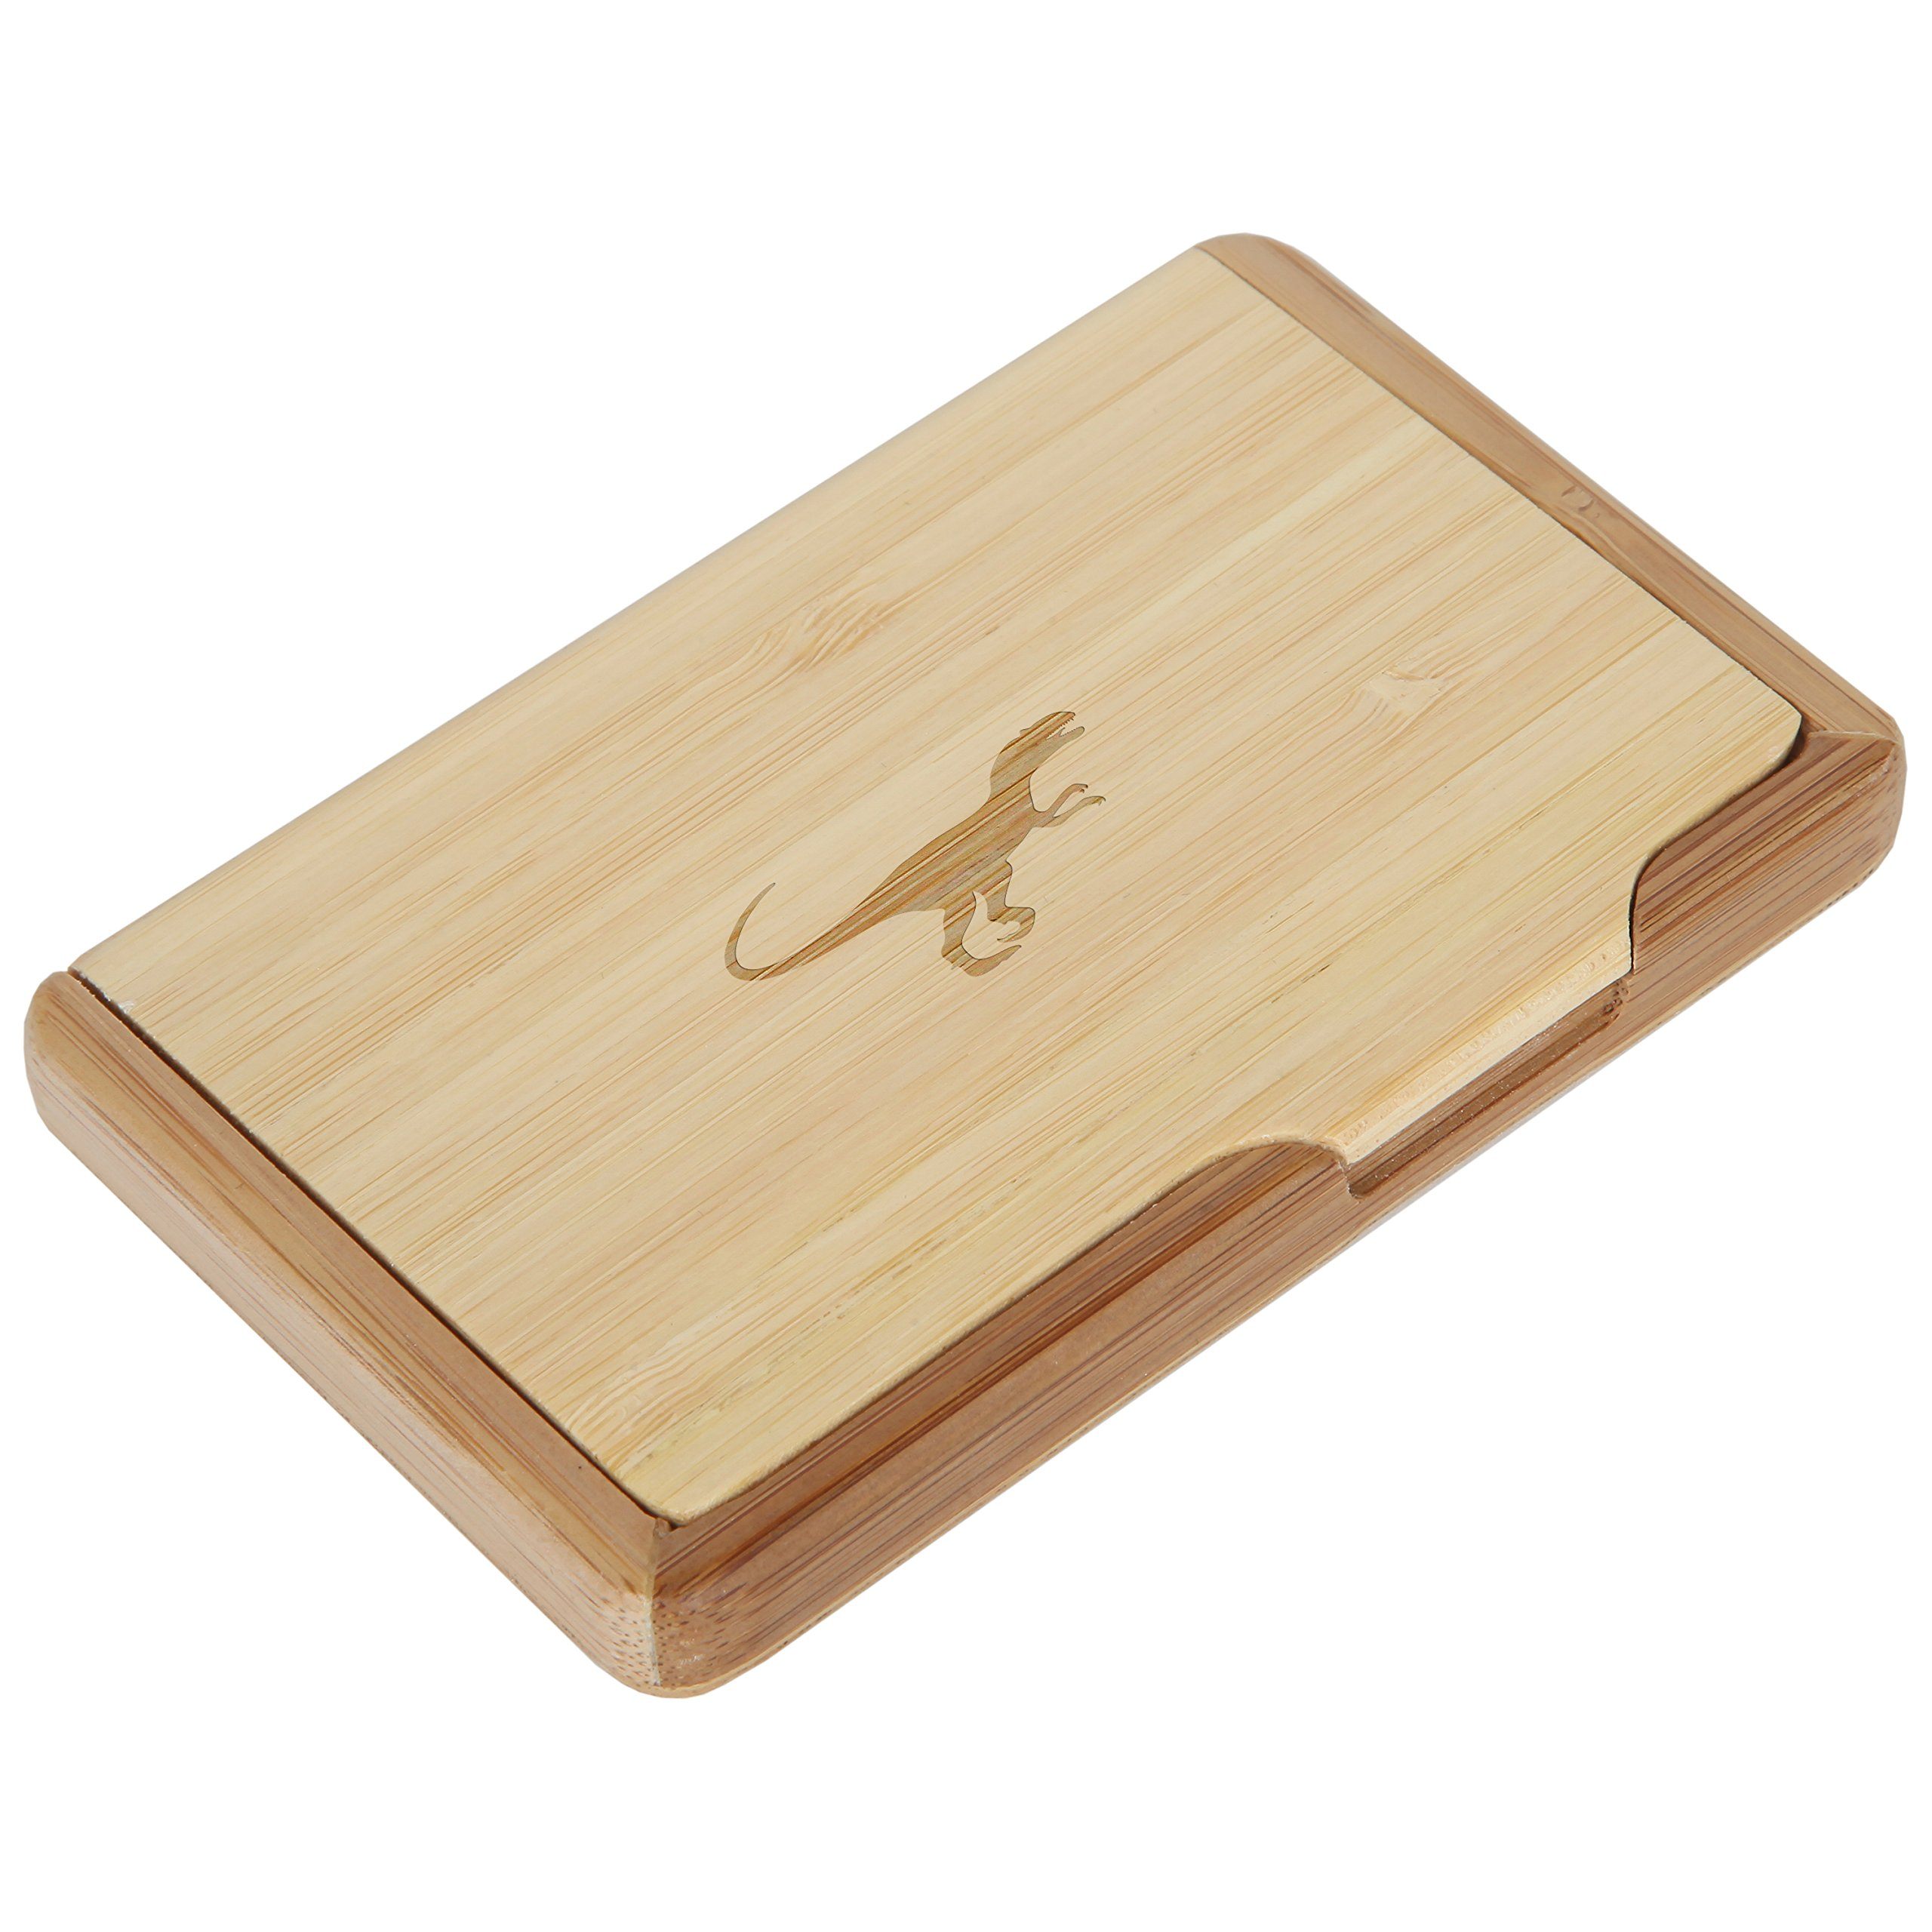 Trex Bamboo Business Card Holder With Laser Engraved Design - Business Card Keeper - Holds Up To 10 Cards - Lightweight Calling Card Case by Wooden Accessories Co